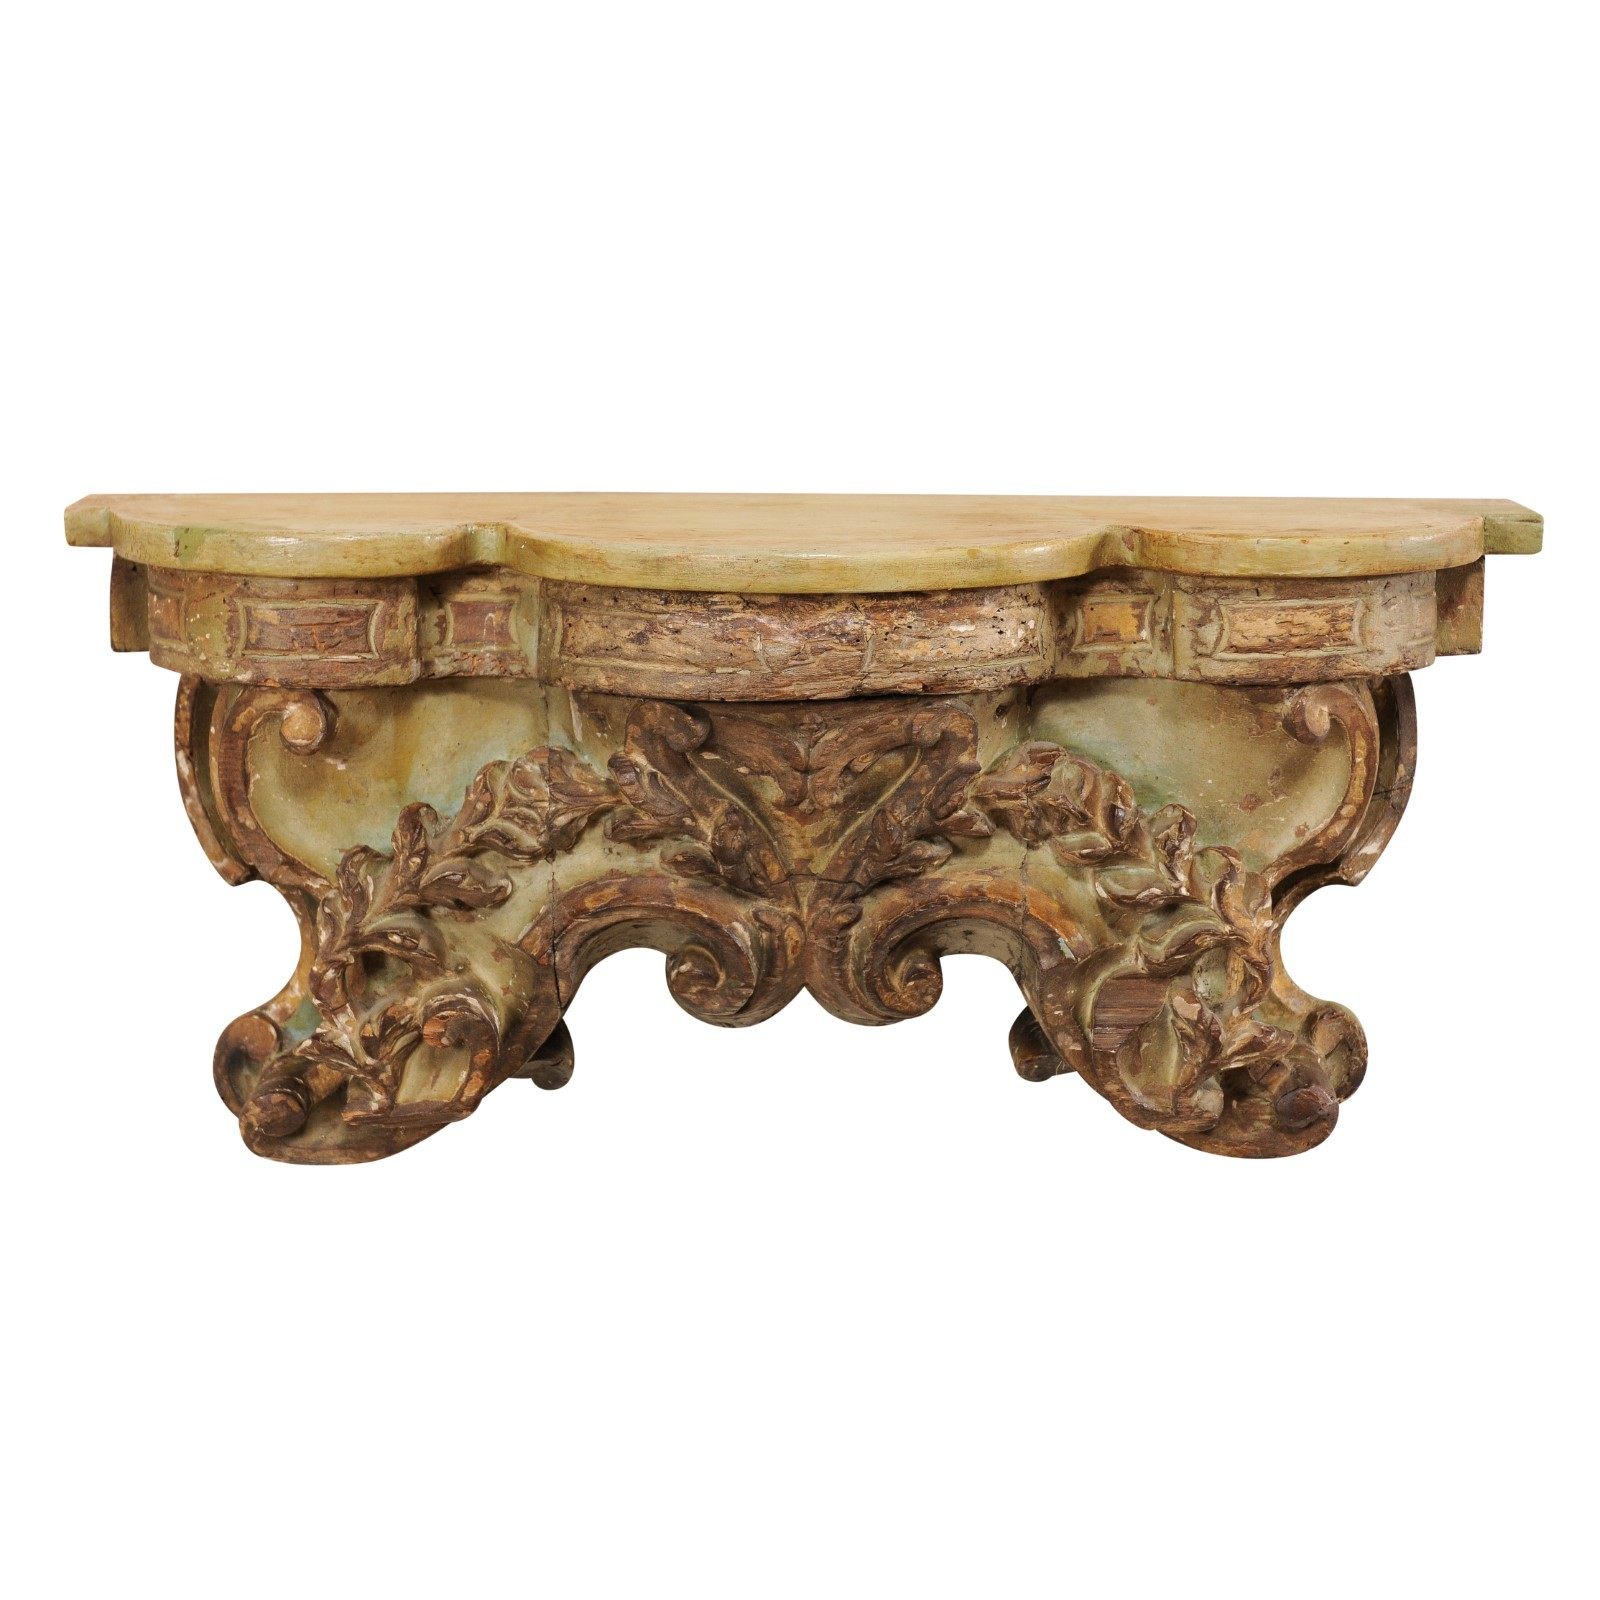 Ornately Carved Wall Shelf, 18th C. Italy